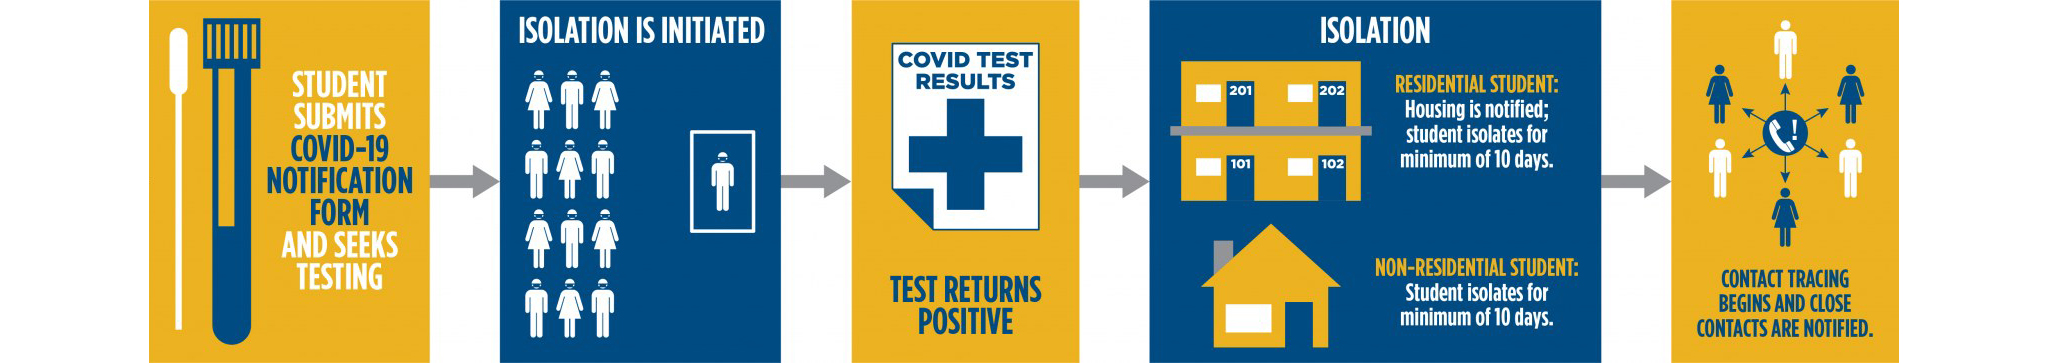 infographic breaks down steps of what happens when a case or suspected case of COVID-19 is reported on campus